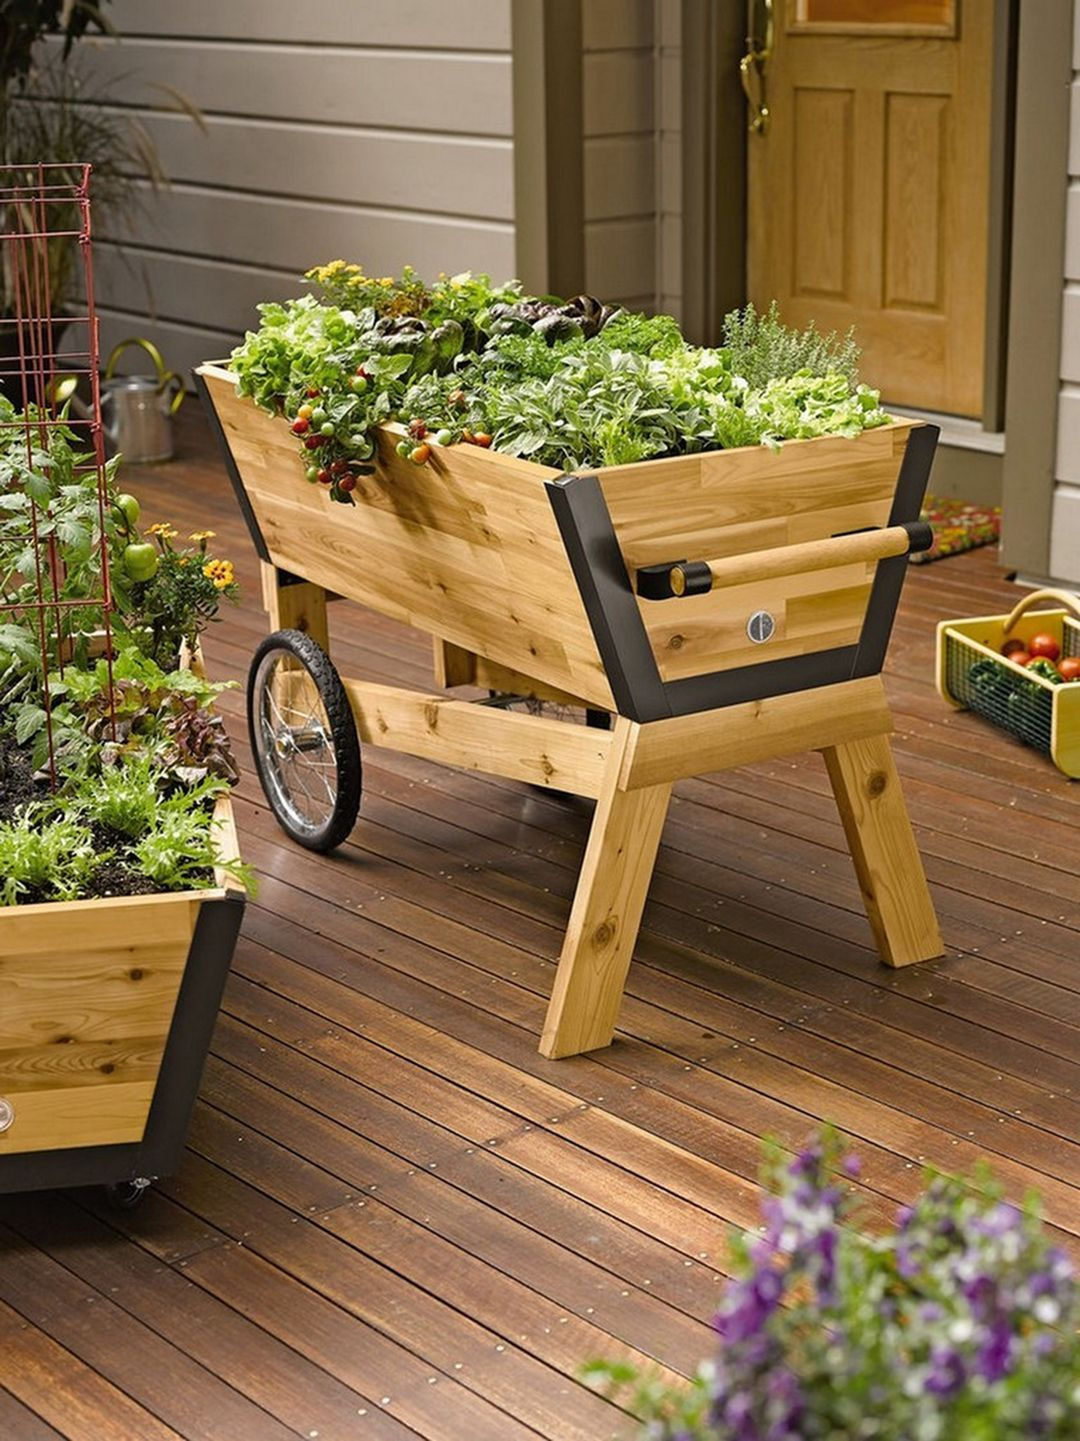 15 Affordable Diy Garden Ideas That Make Your Home Yard Amazing